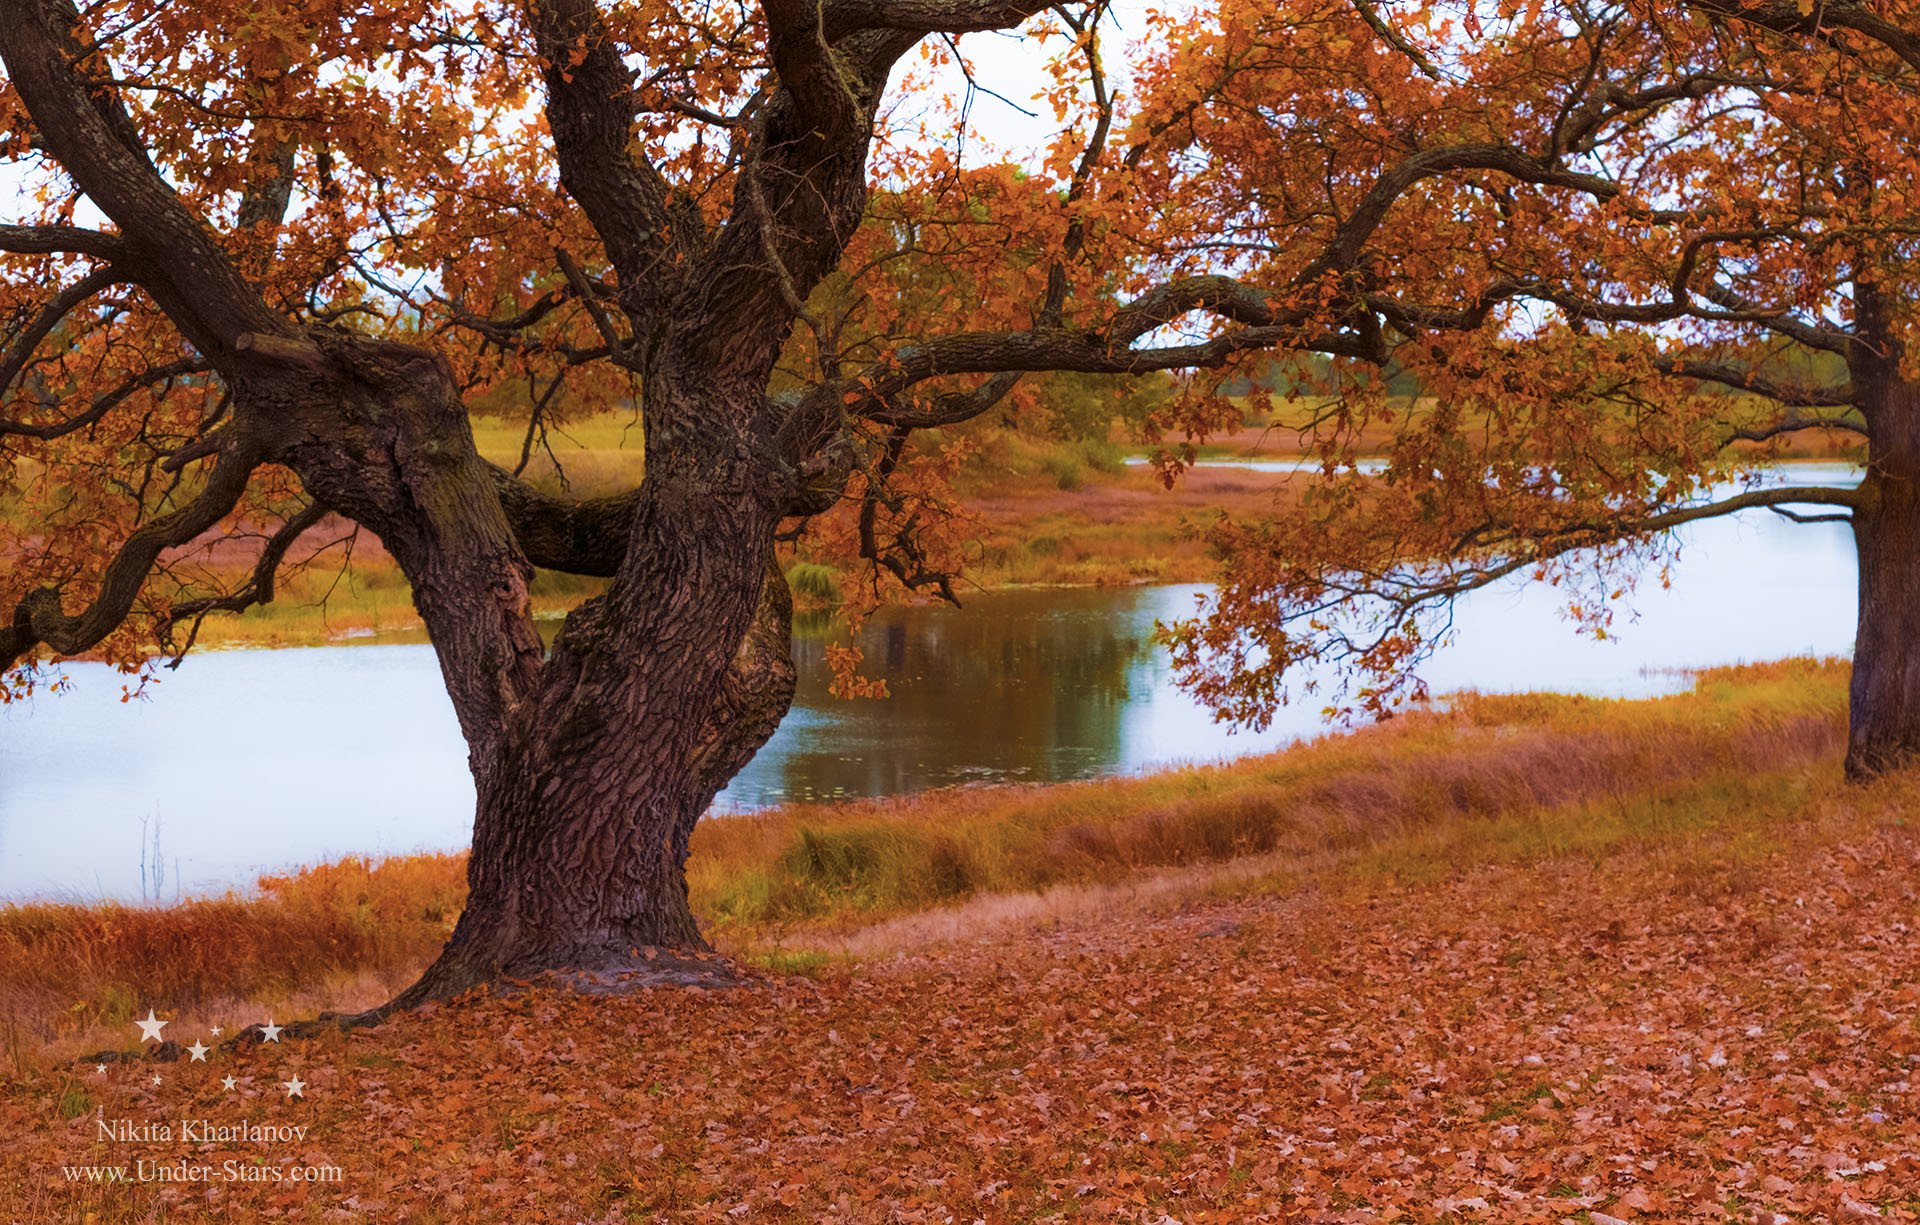 autumn, yellow, trees, leaves, sky, lake, red, forest, color, water, river, blue, light, clouds, tree, fall, leaf, oak, Харланов Никита